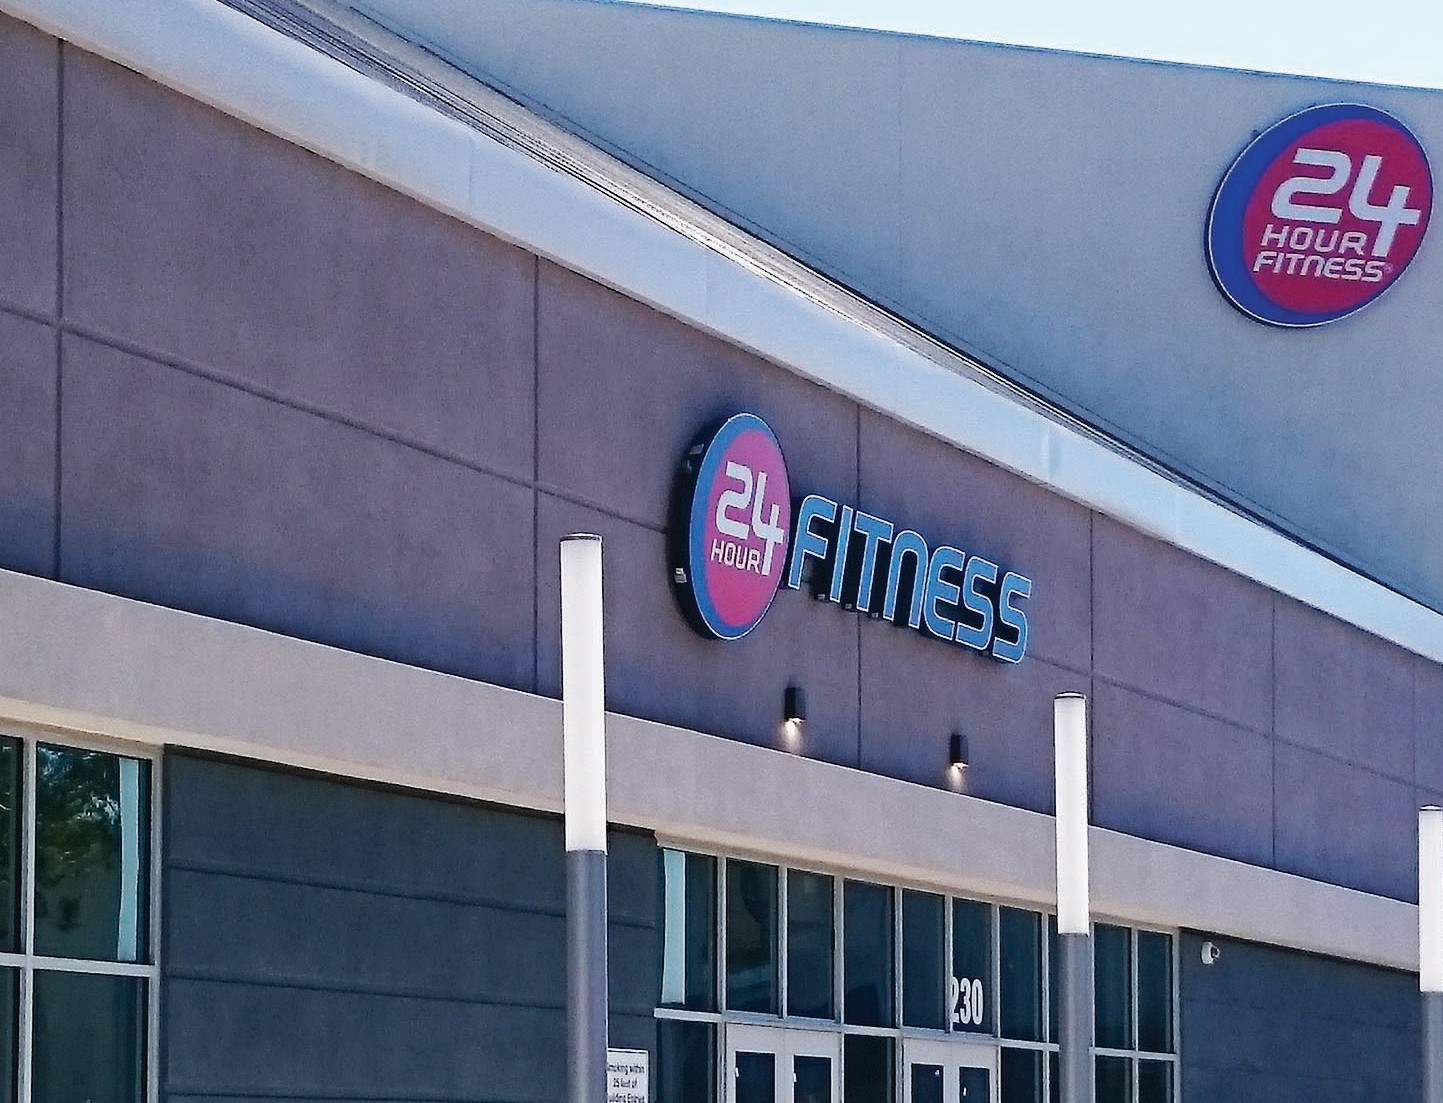 24 Hour Fitness is anxiously awaiting the day when it will finally be able to open its doors to the public at the Westfield North County Mall.